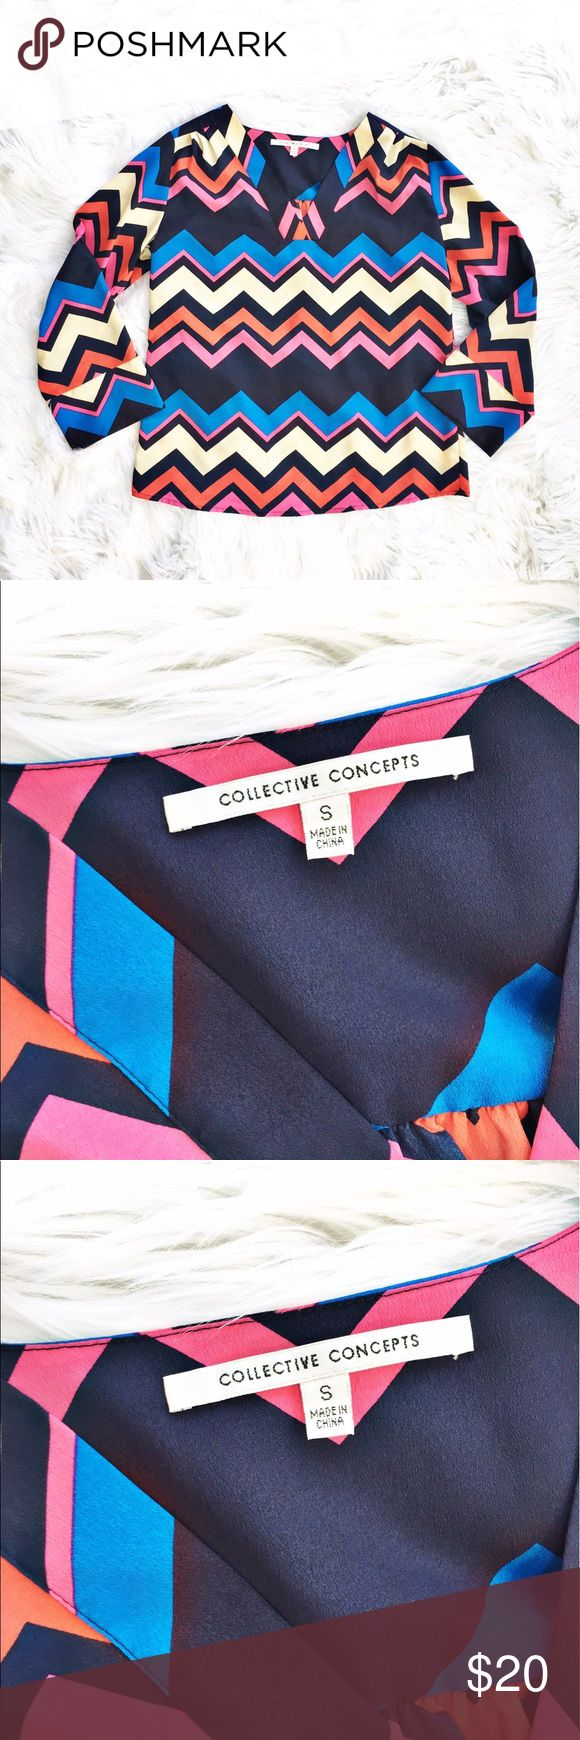 "Stitch Fix Collective Concepts chevron blouse Vibrant chevron pattern popover blouse, size small from Collective Concepts (Stitch Fix). Sleeves can be worn long or rolled and buttoned back. Excellent condition. Flat measurements are bust 20"", length 25.5"". Collective Concepts Tops Blouses"